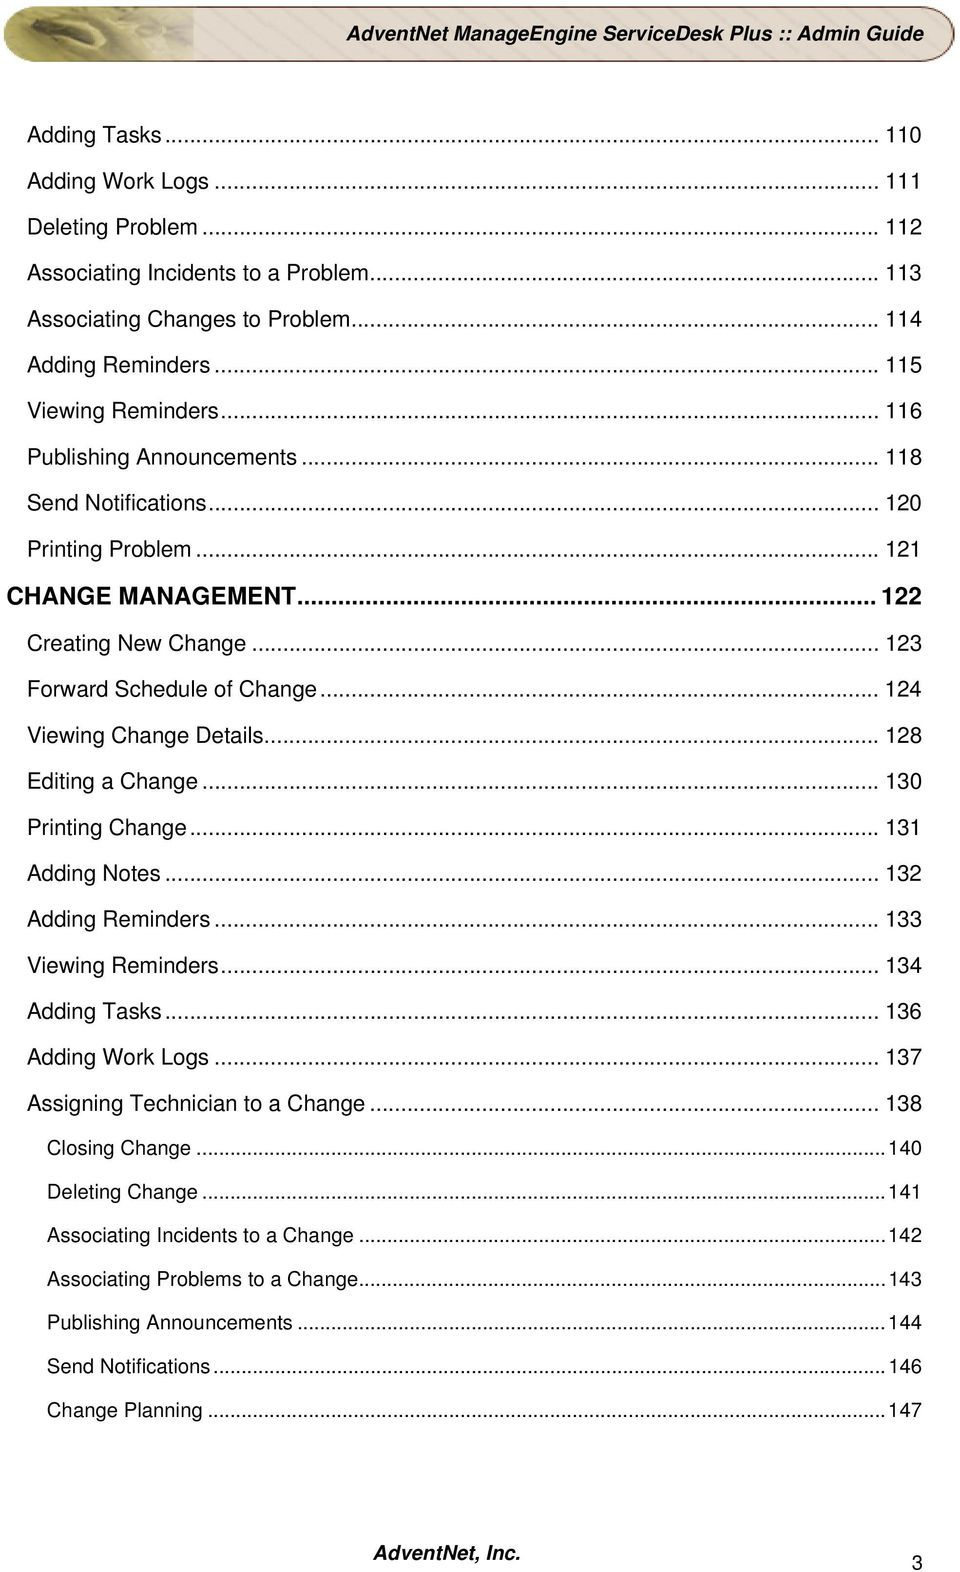 .. 128 Editing a Change... 130 Printing Change... 131 Adding Notes... 132 Adding Reminders... 133 Viewing Reminders... 134 Adding Tasks... 136 Adding Work Logs... 137 Assigning Technician to a Change.